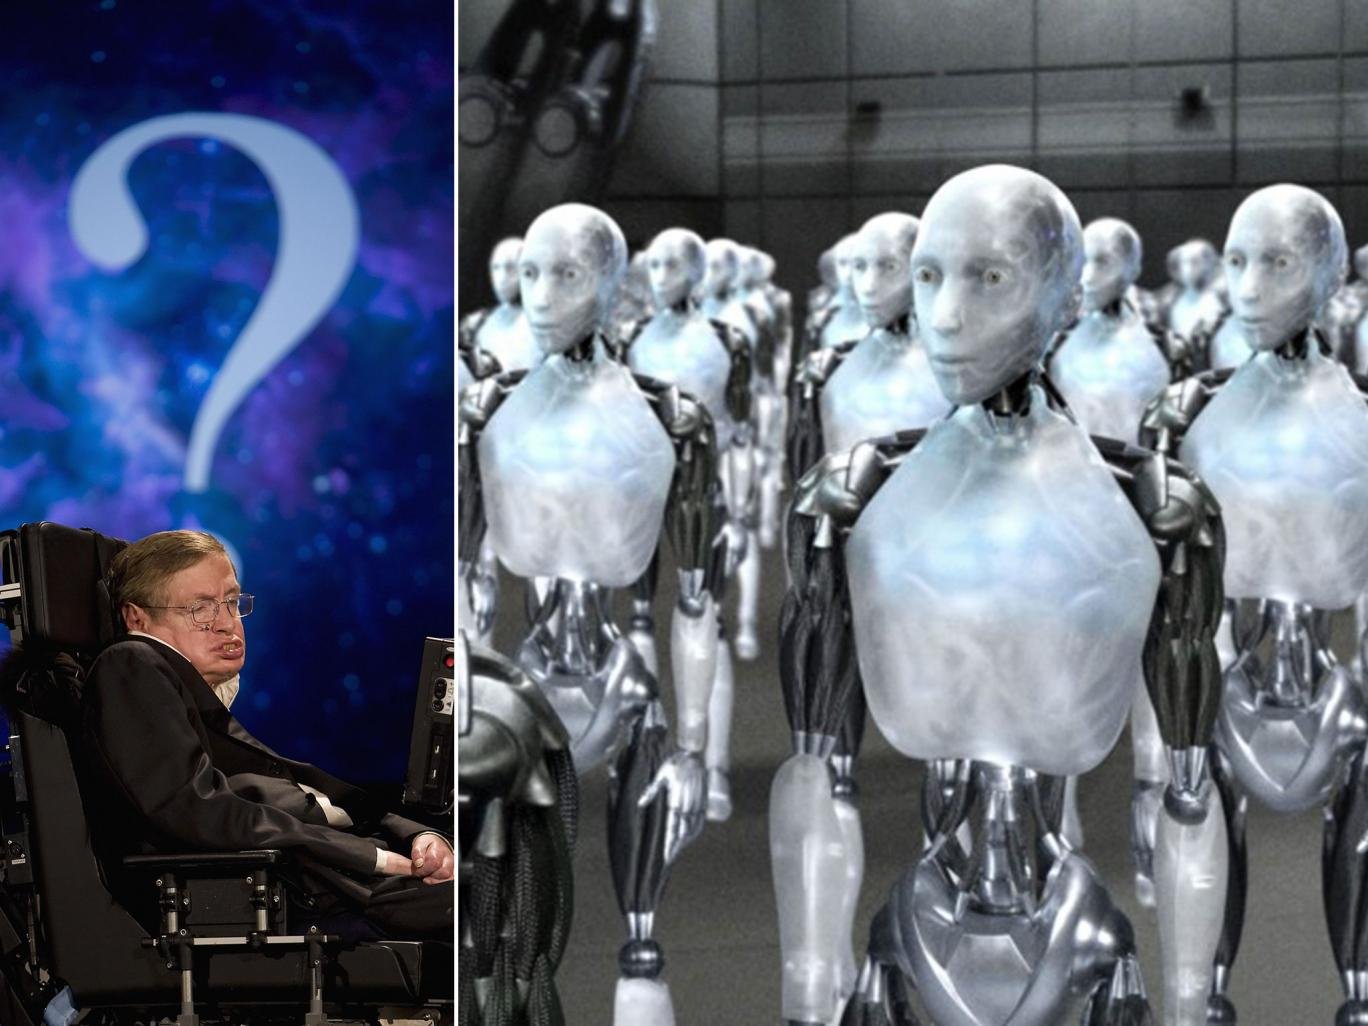 Stephen Hawking and out of control computers from I, Robot